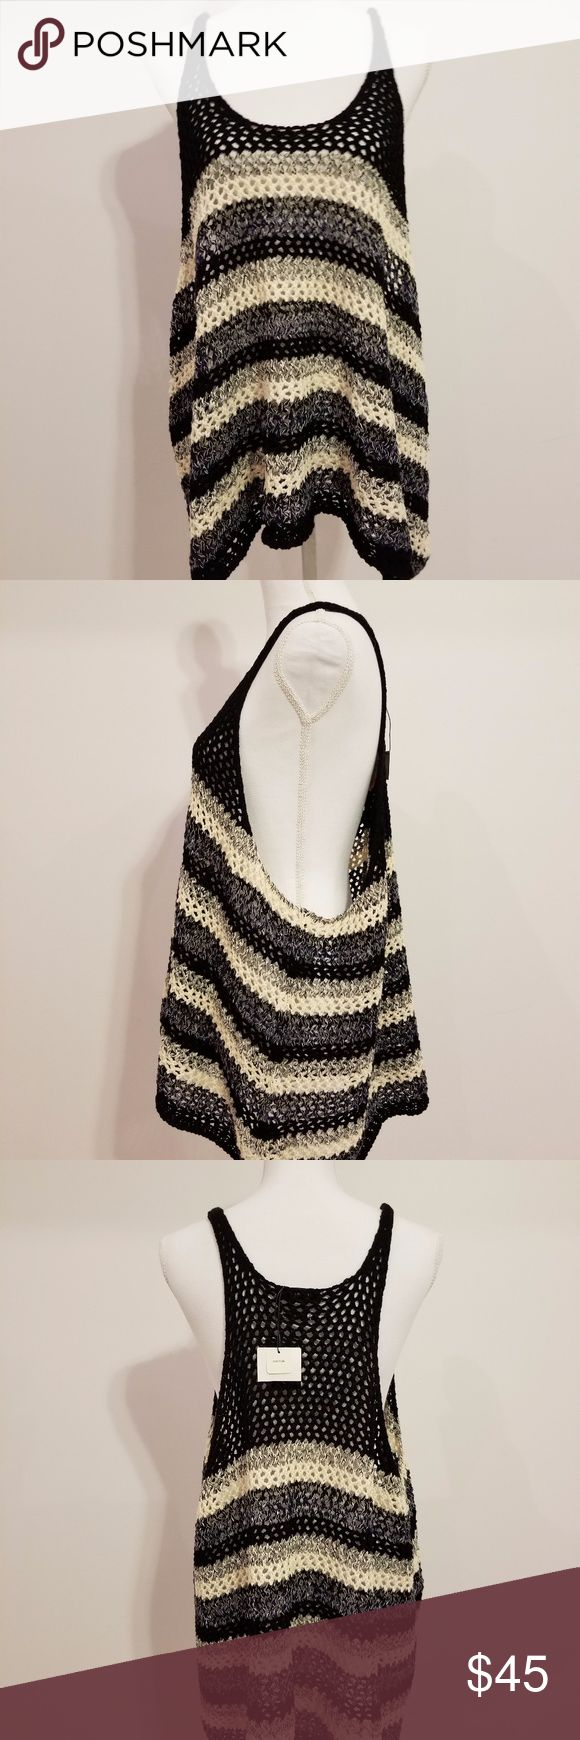 Zara sweater tank Stripe black and white sweater material tank top. Wear it under your favorite white long sleeve for a warm comfortable look this fall.  New from smoke and pet free home. Please note due to screen differences, the color may be obstructed. Measurements are approximate and when laying flat. Zara Tops